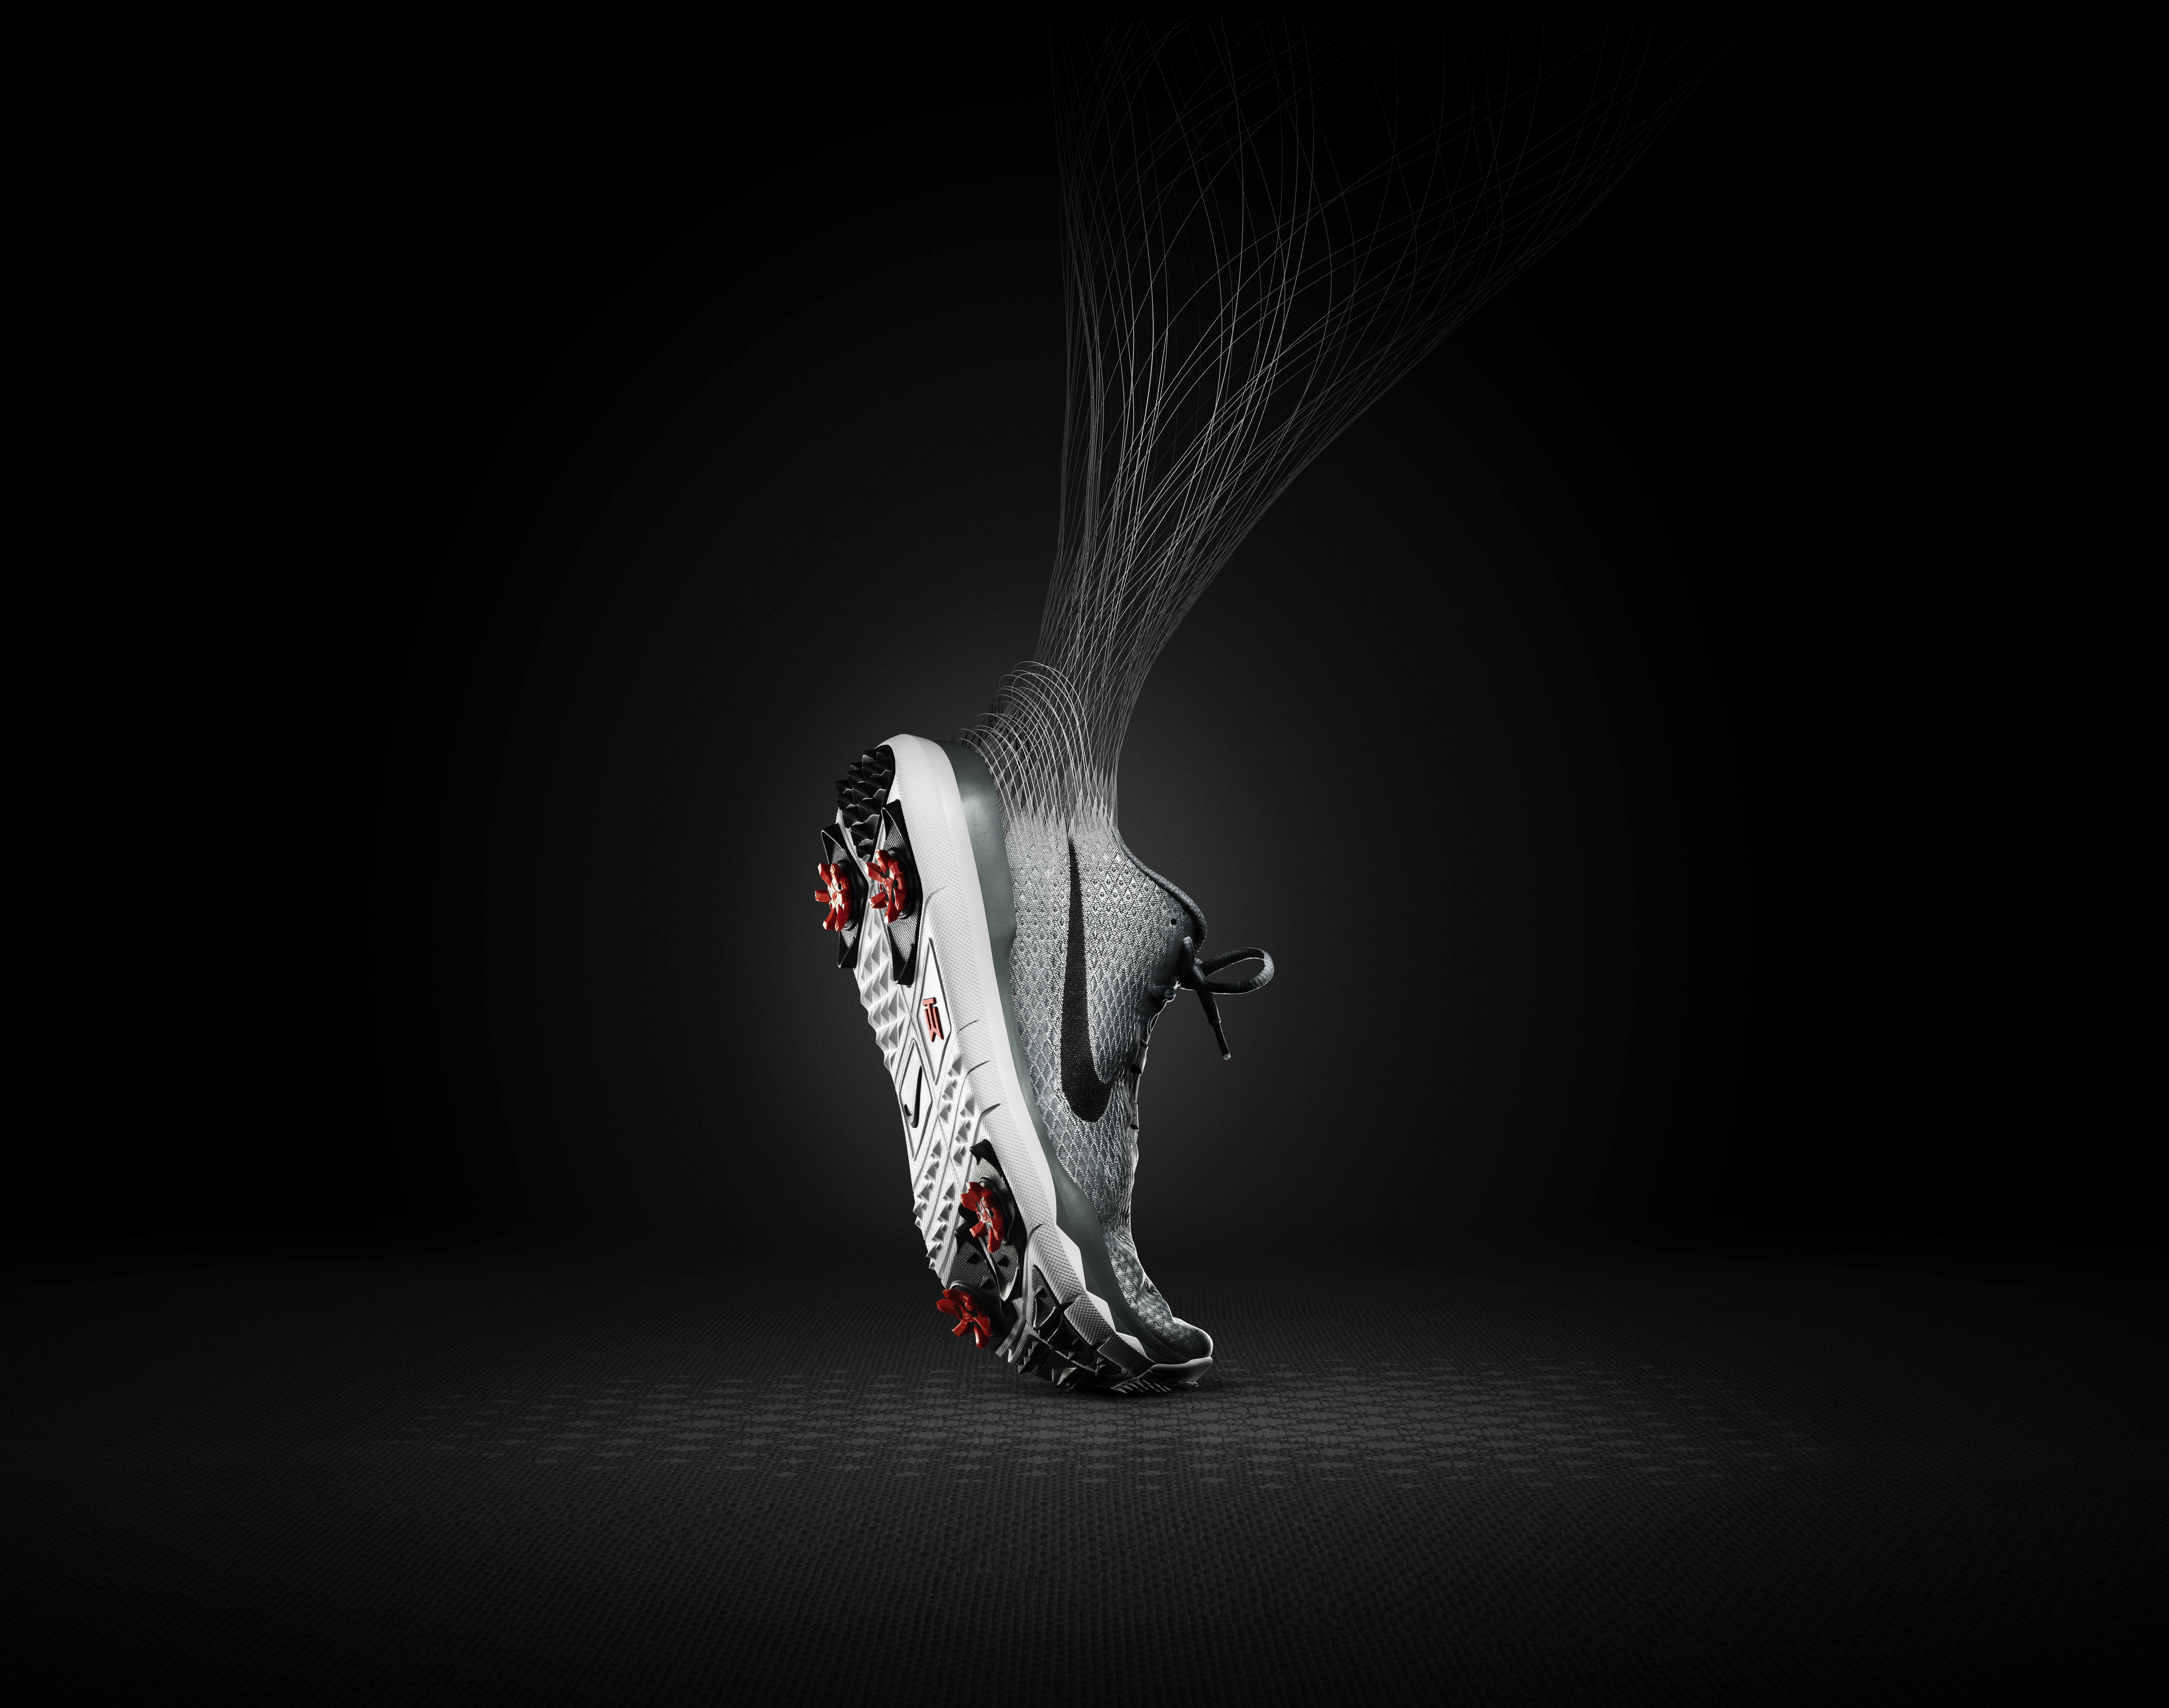 Sport Wallpaper Shoes Outlet: NIKE GOLF TAKES TIGER WOODS' SIGNATURE TW '15 TO NEW LEVEL